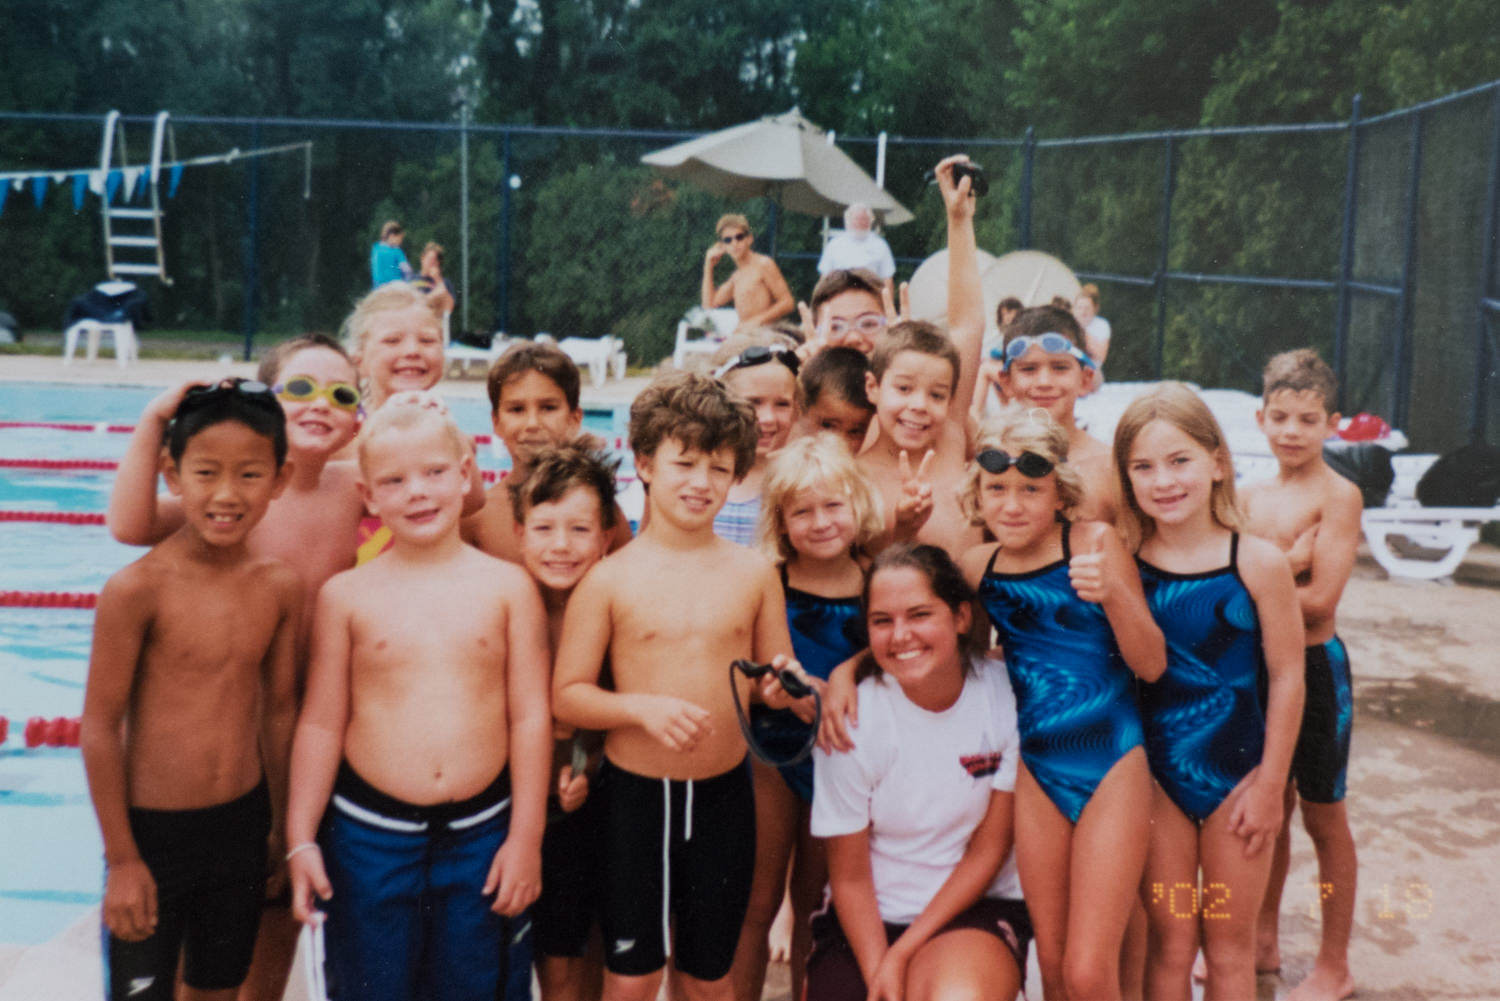 One of the biggest influences in my life has been the Arlington Knights of Columbus swim team. I was a swimmer from age 7 to 18. Then I coached the team for four years. The sense of community on this team is amazing. It's all about helping each other over being competitive. I did a personal project on the team in 2016, and it warmed my heart that the team is still exactly the same. The big kids help the little kids. They teach them to swim and indoctrinate them into the Holy Mackerel customs. The little ones still belly flop into the pool, hang off the big kids and walk around the pool deck wearing their foggy goggles.